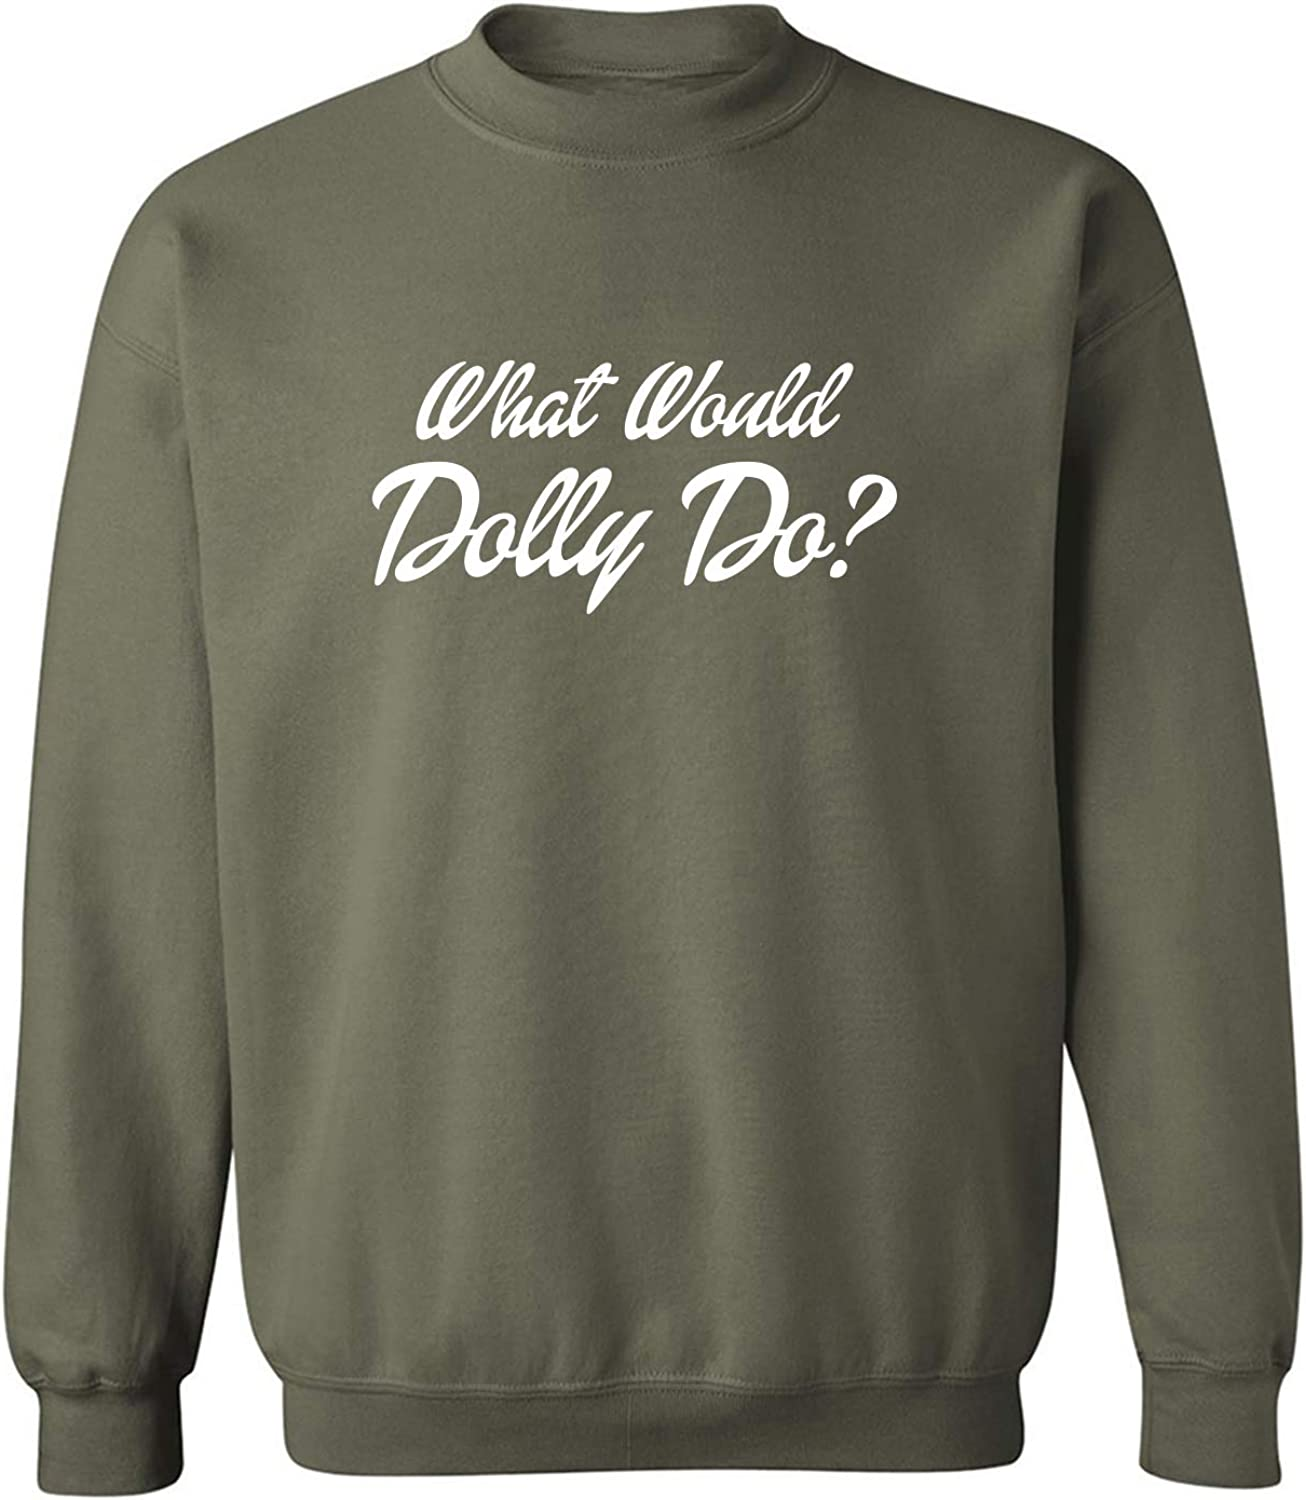 What Would Dolly Do? Crewneck Sweatshirt